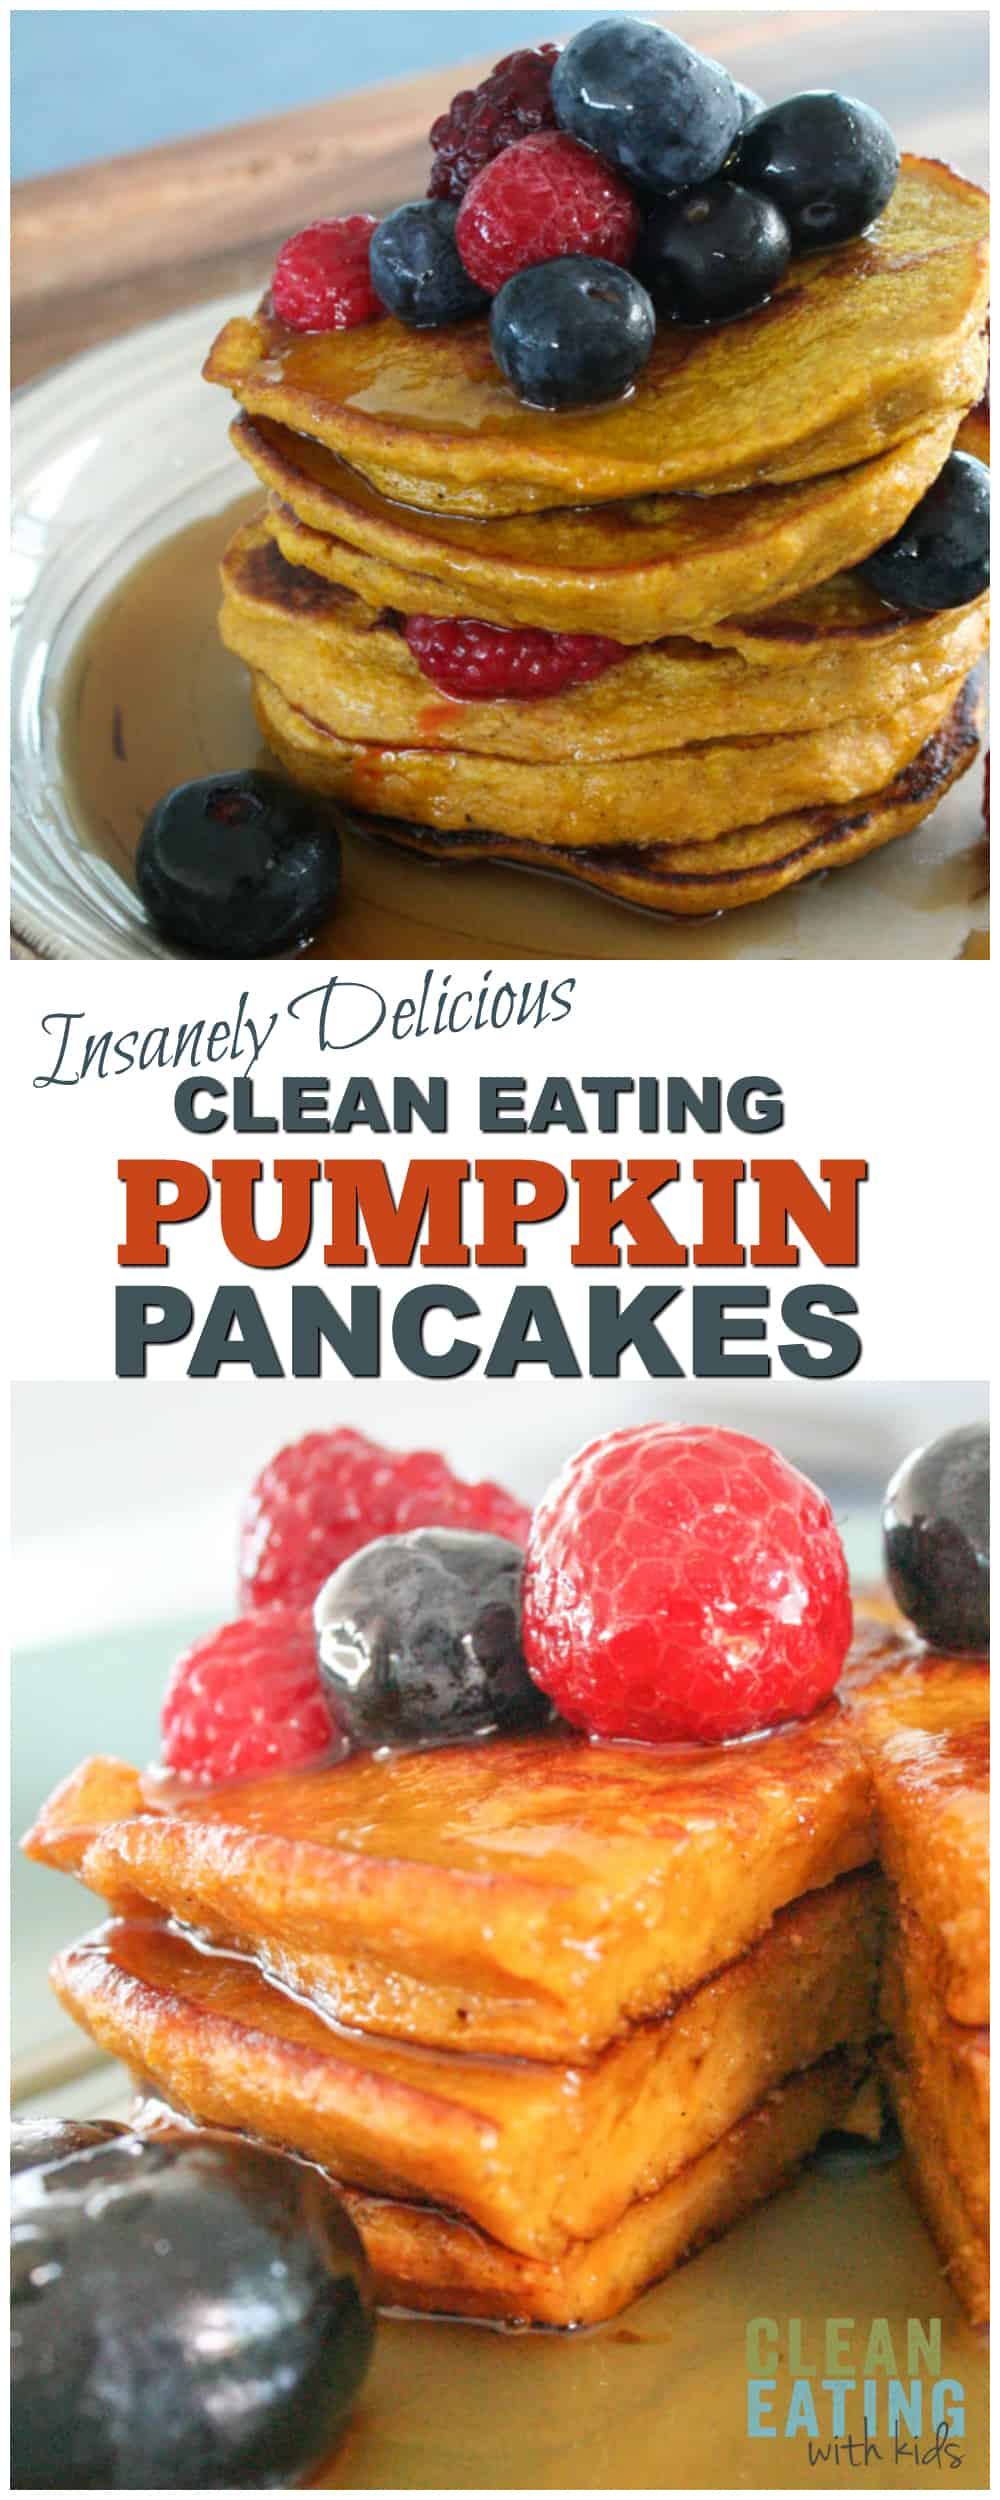 Delicious, sweet and spongy Pumpkin Spice Pancakes with Maple Syrup and Mixed Berries. A reason to look forward to fall. This amazing breakfast recipe will fool the fussiest child (or adult) into eating pumpkin with pure delight! Insanely Good!!!